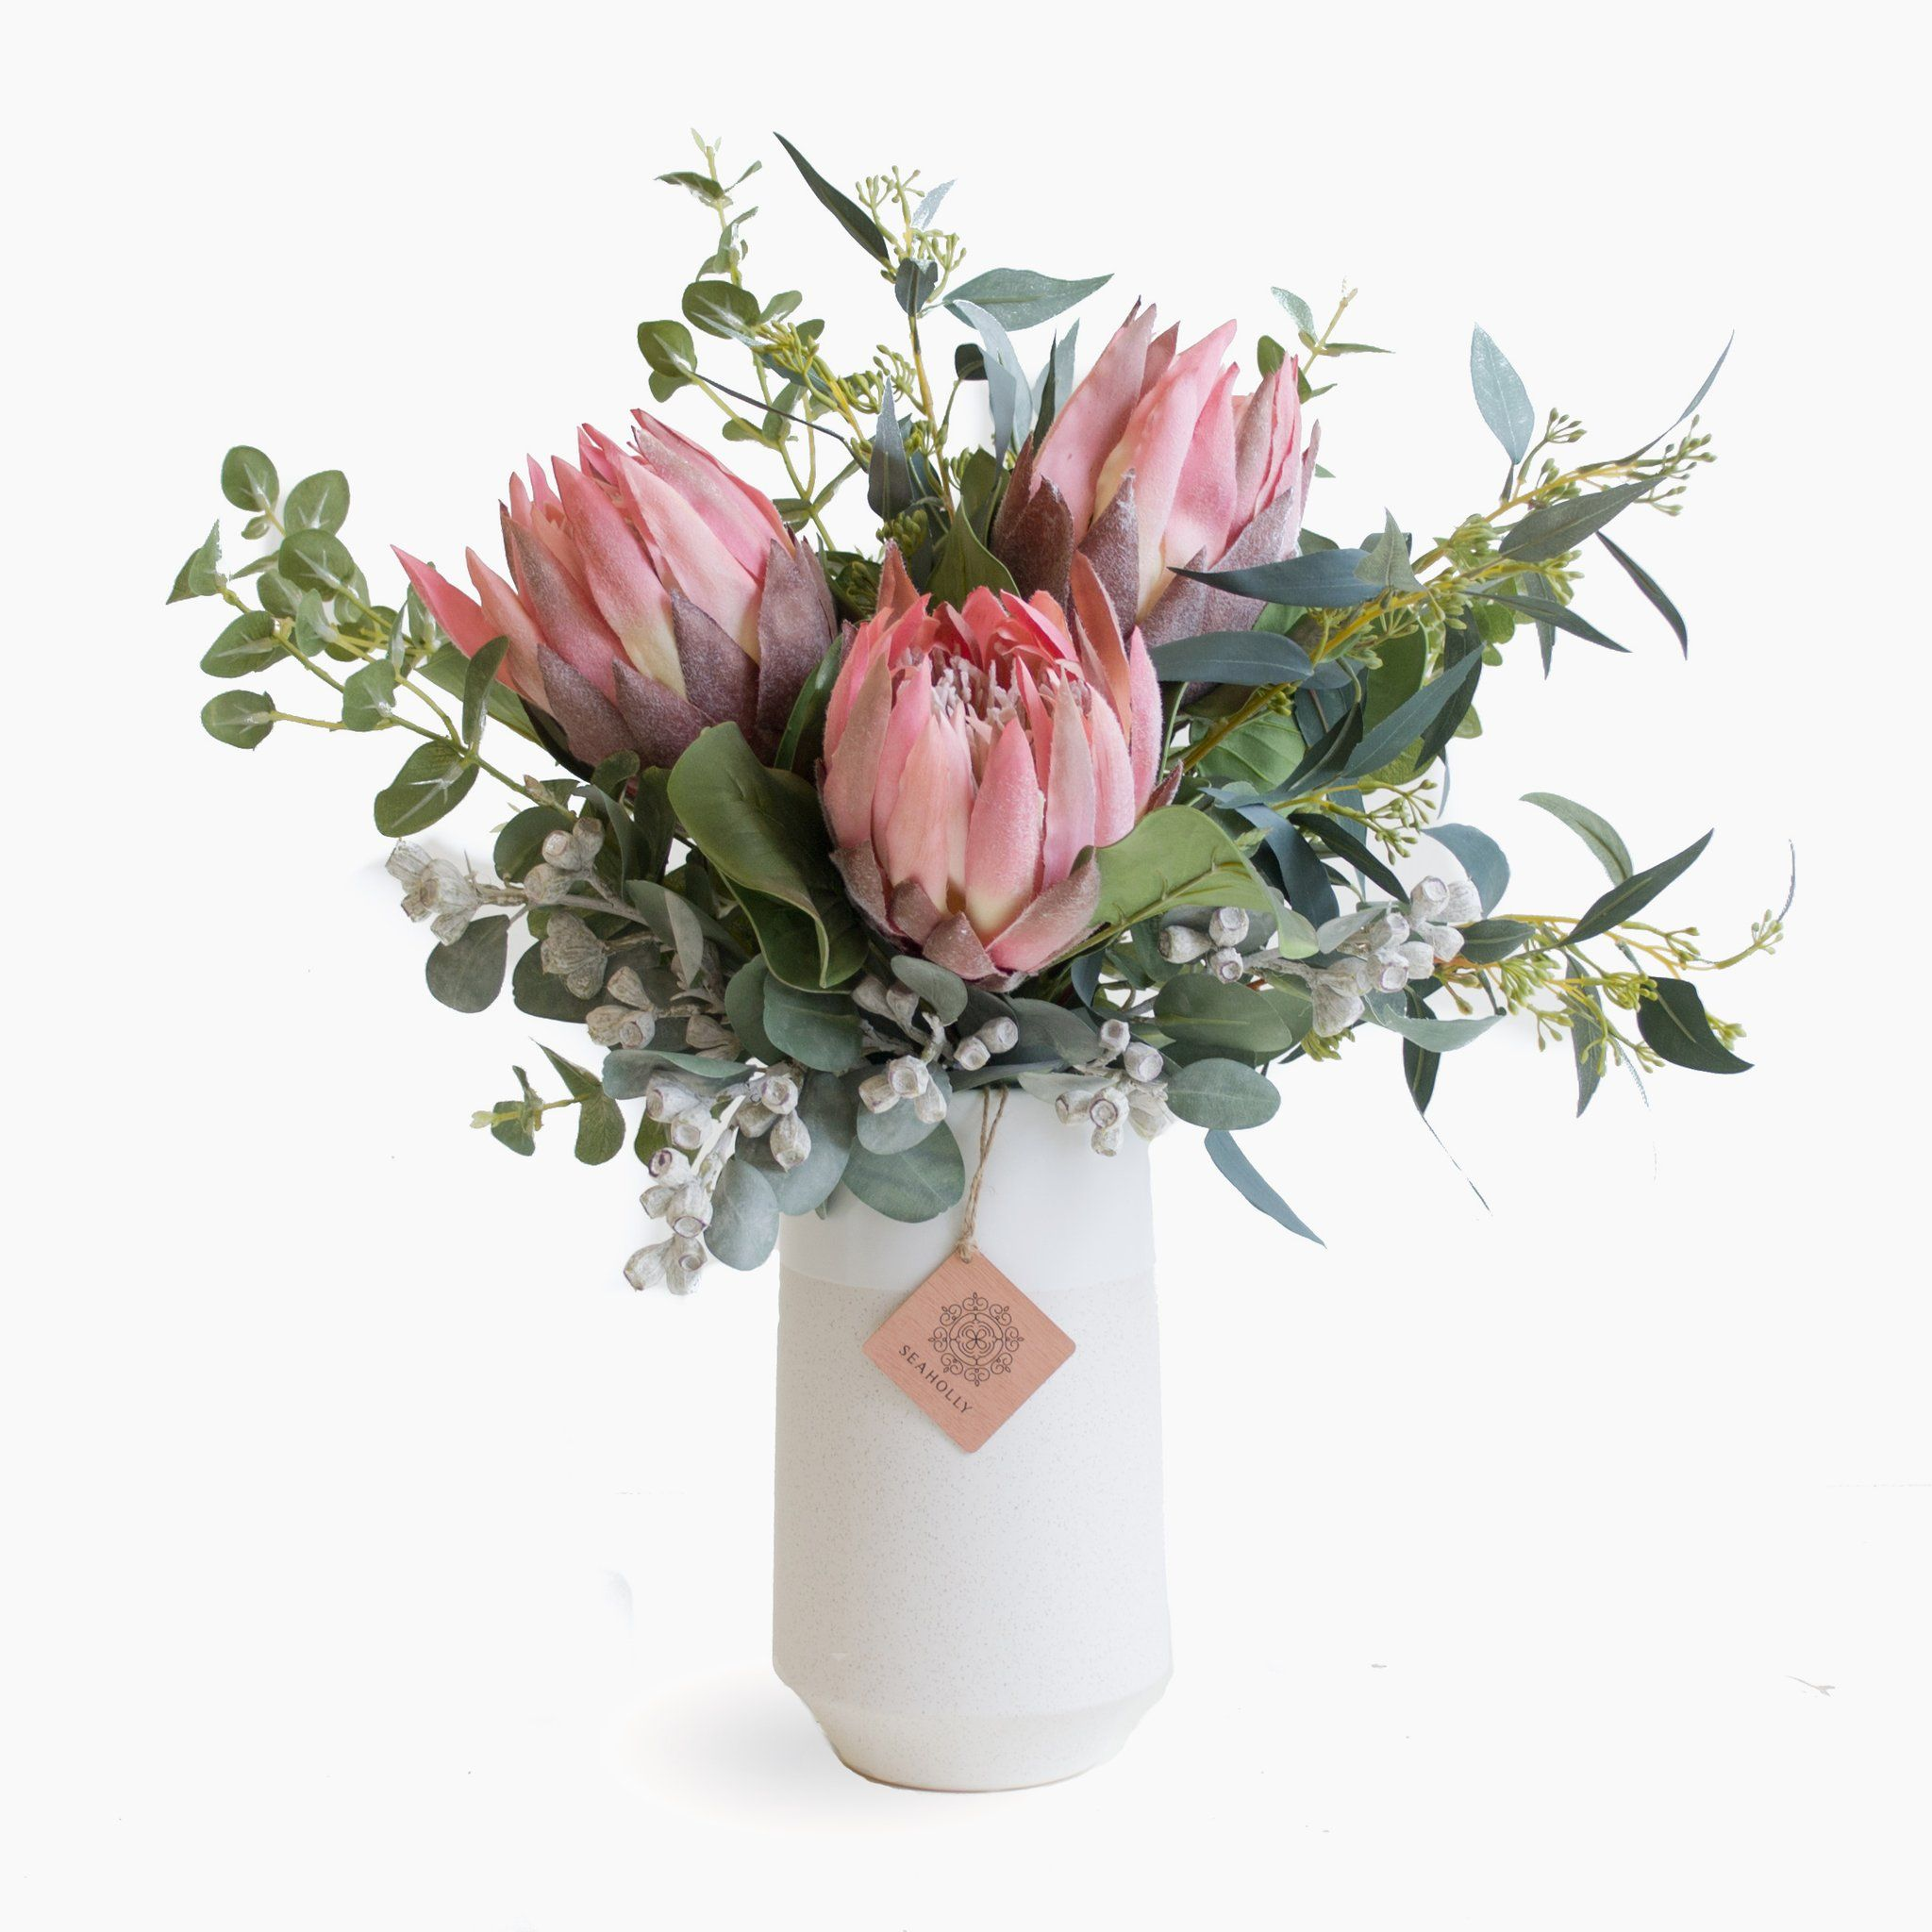 Pink Protea Eucalyptus And Tetra Nuts In Vanilla Vase Flower Vase Arrangements Australian Flowers Flower Arrangements